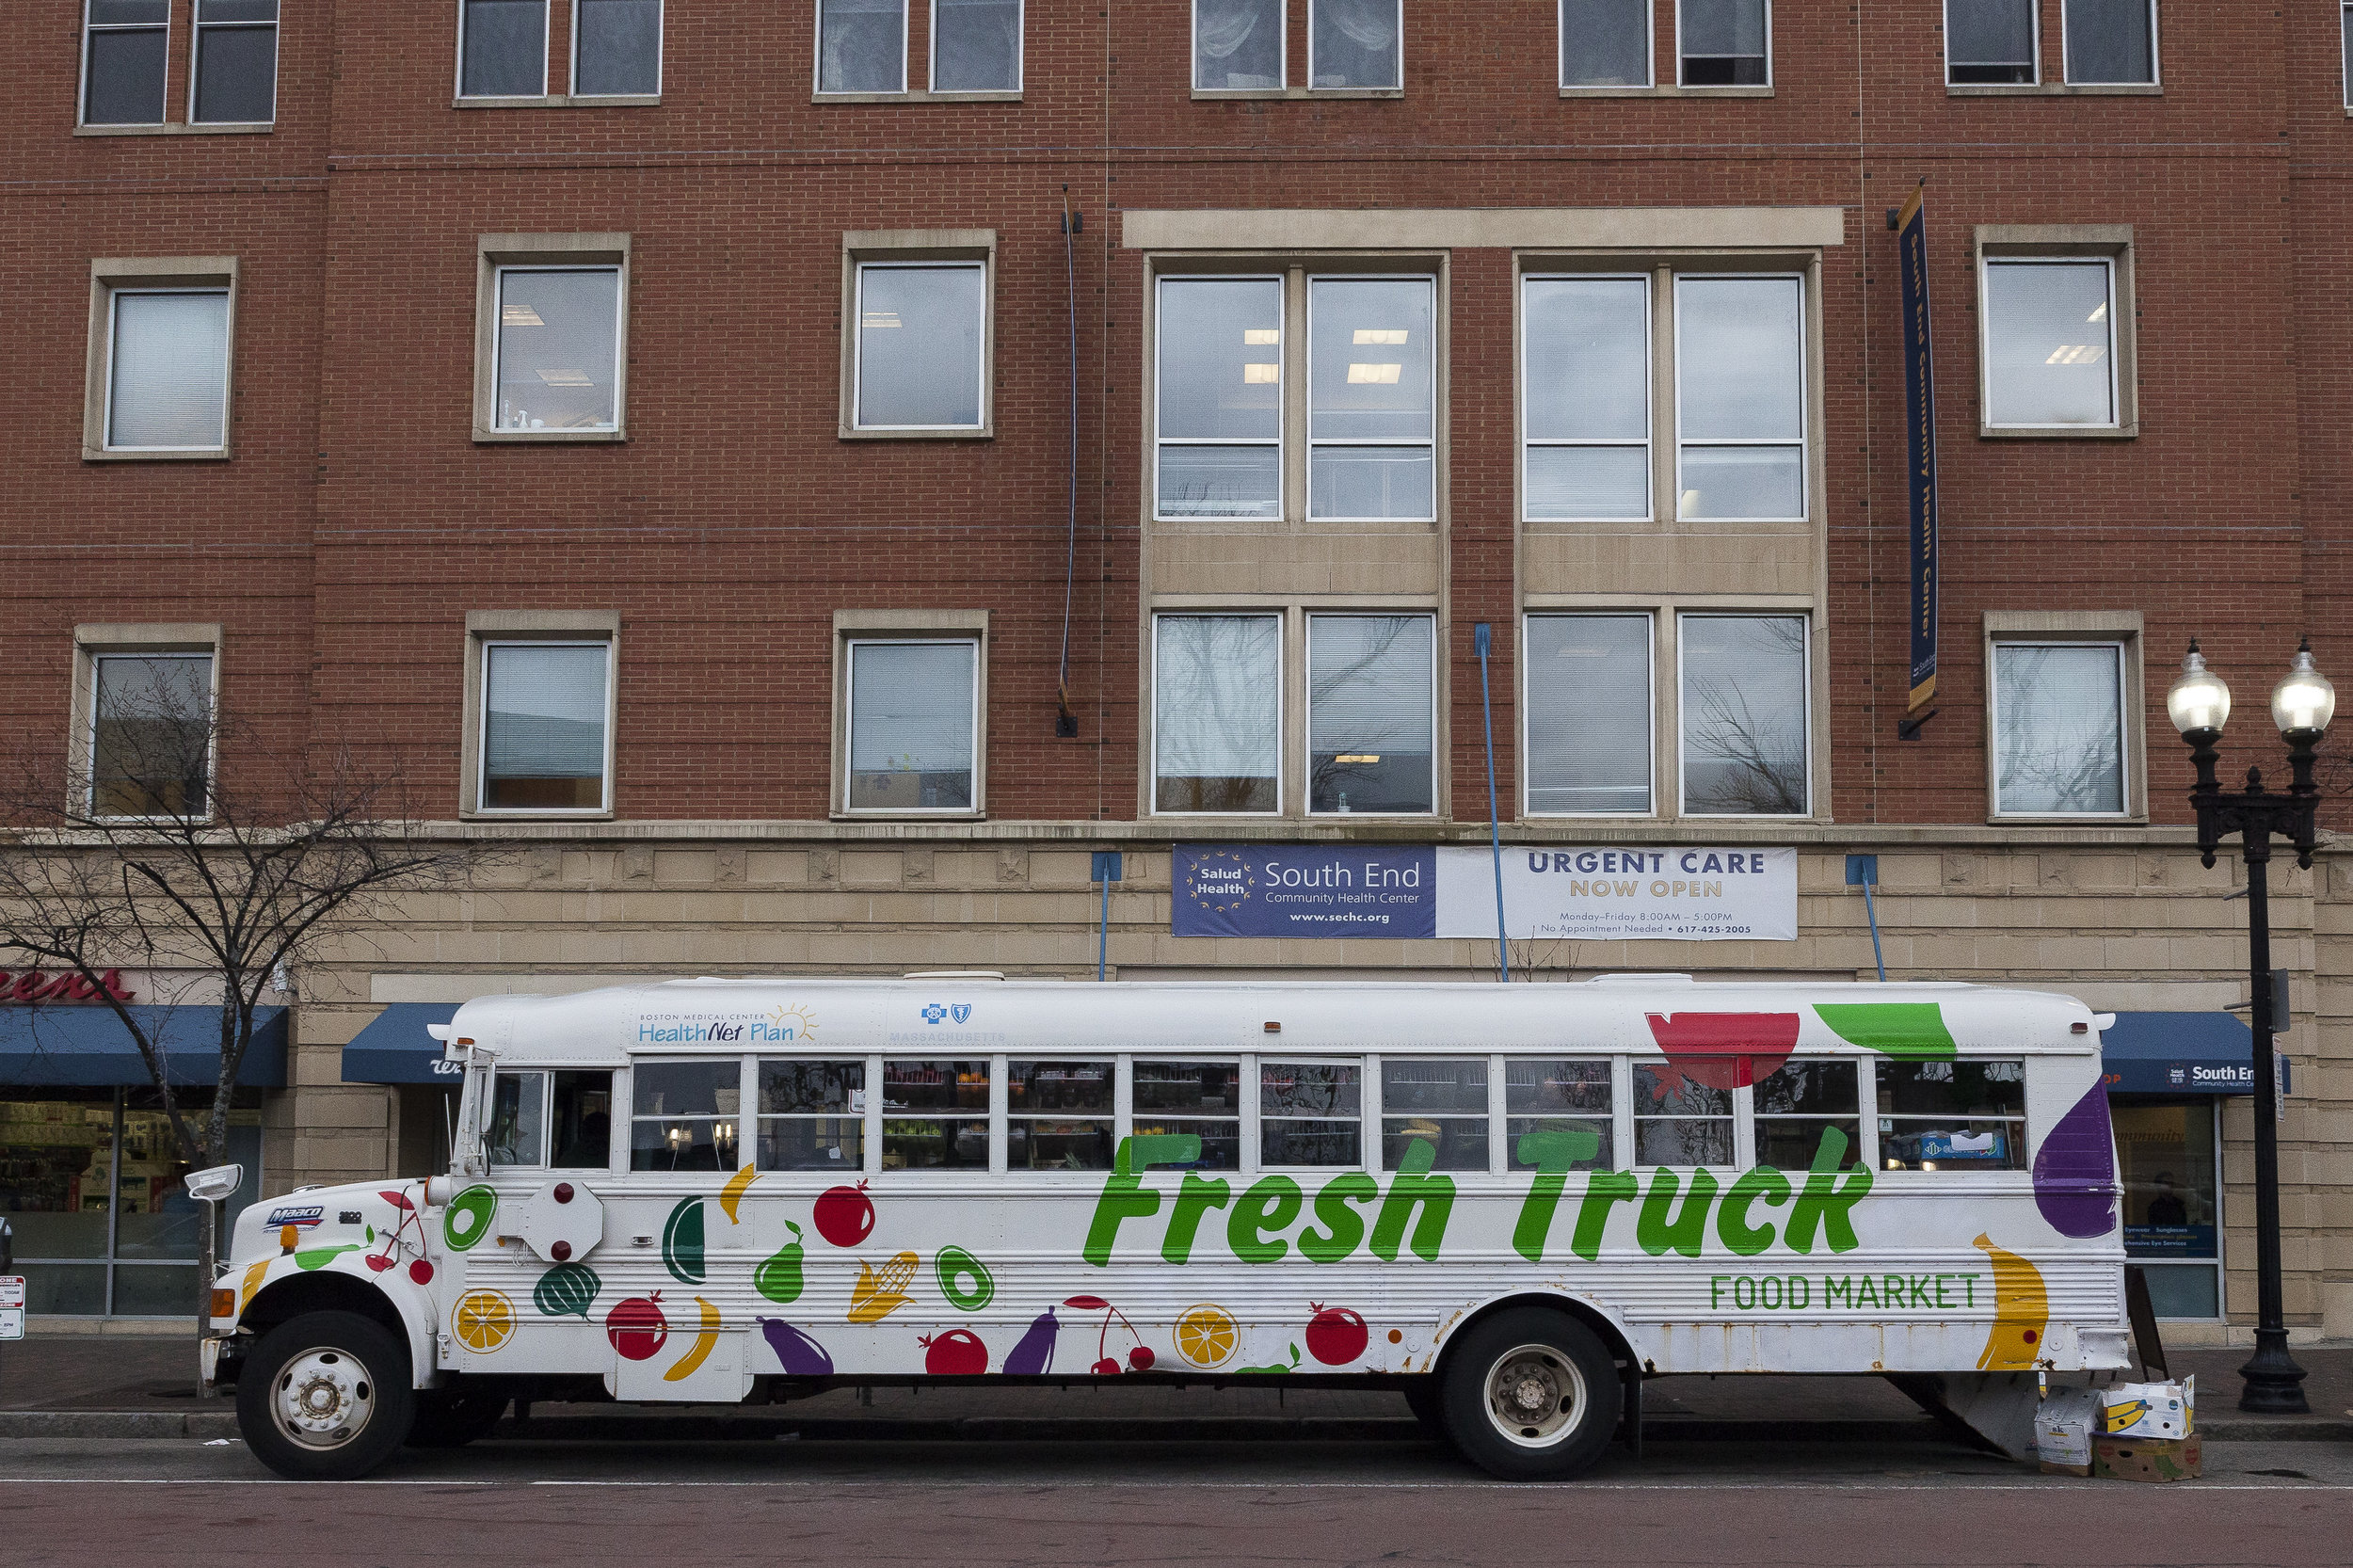 Founded in 2013 by Josh Trautwein and Annika Morgan, Fresh Truck is a proactive effort to improve the well-being of Boston by providing a healthy food option in communities who need it most.